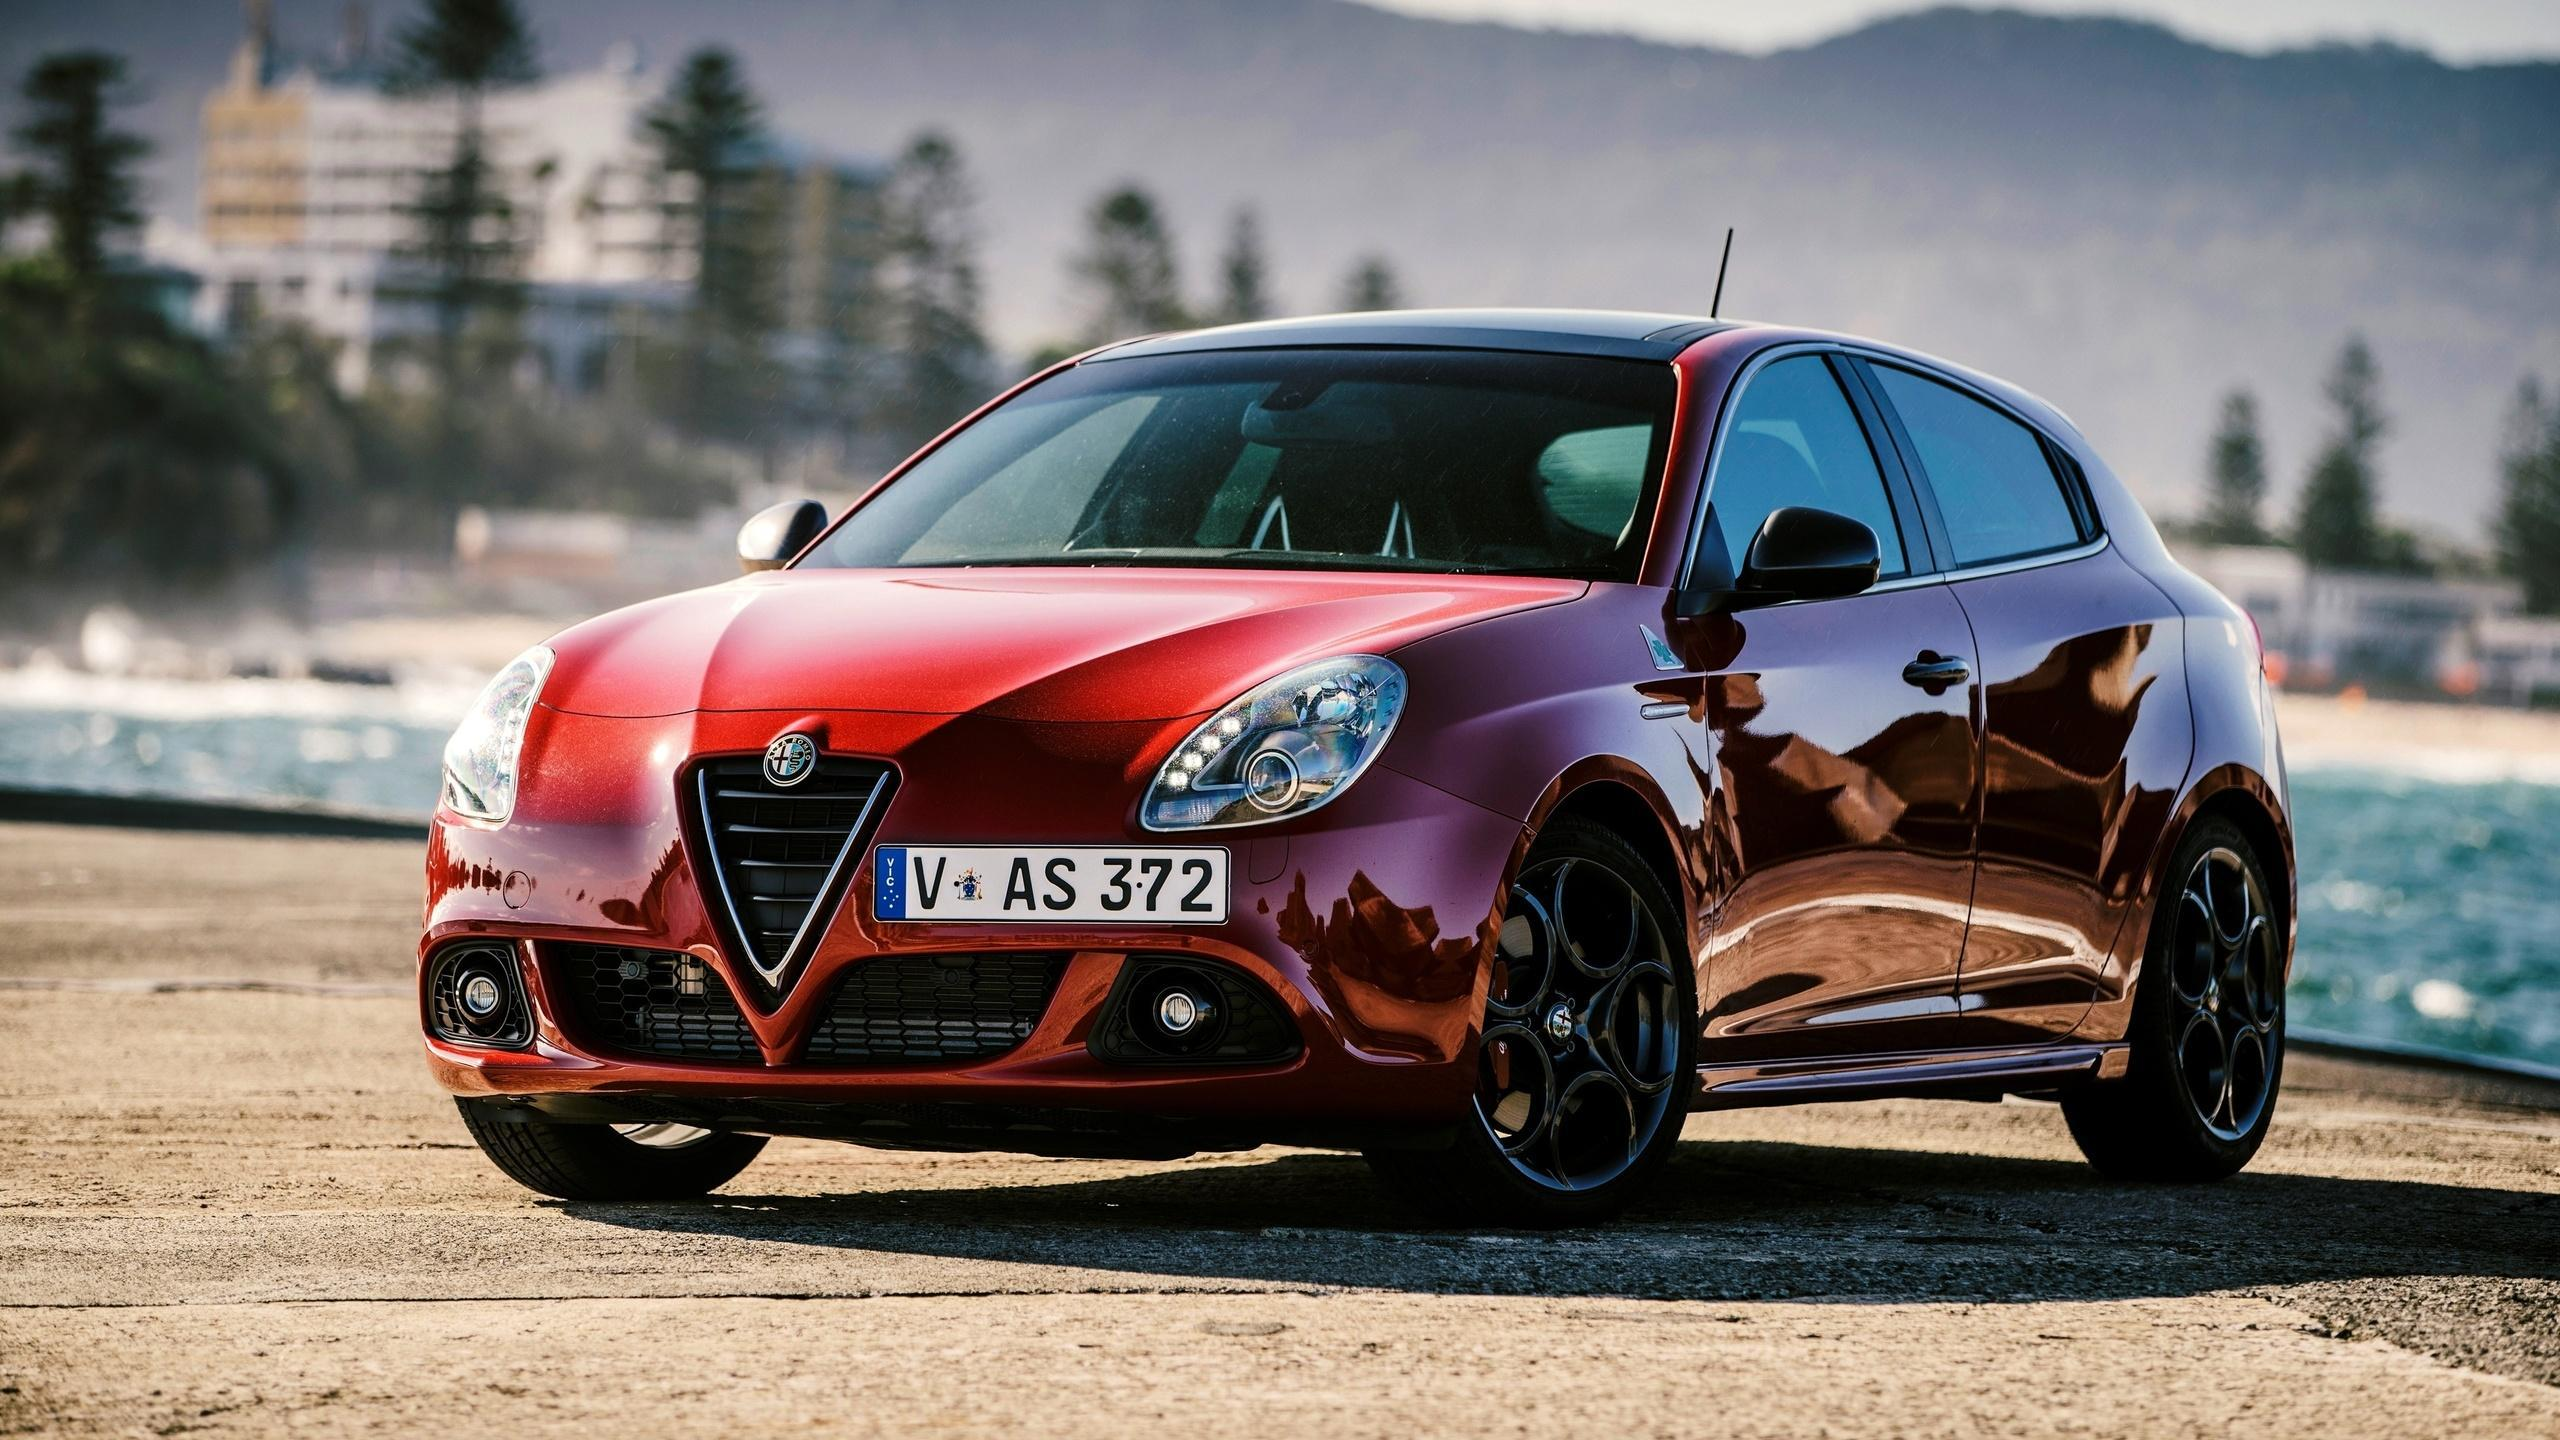 Wallpaper Alfa Romeo Hd Live 4k Photo Backgrounds For